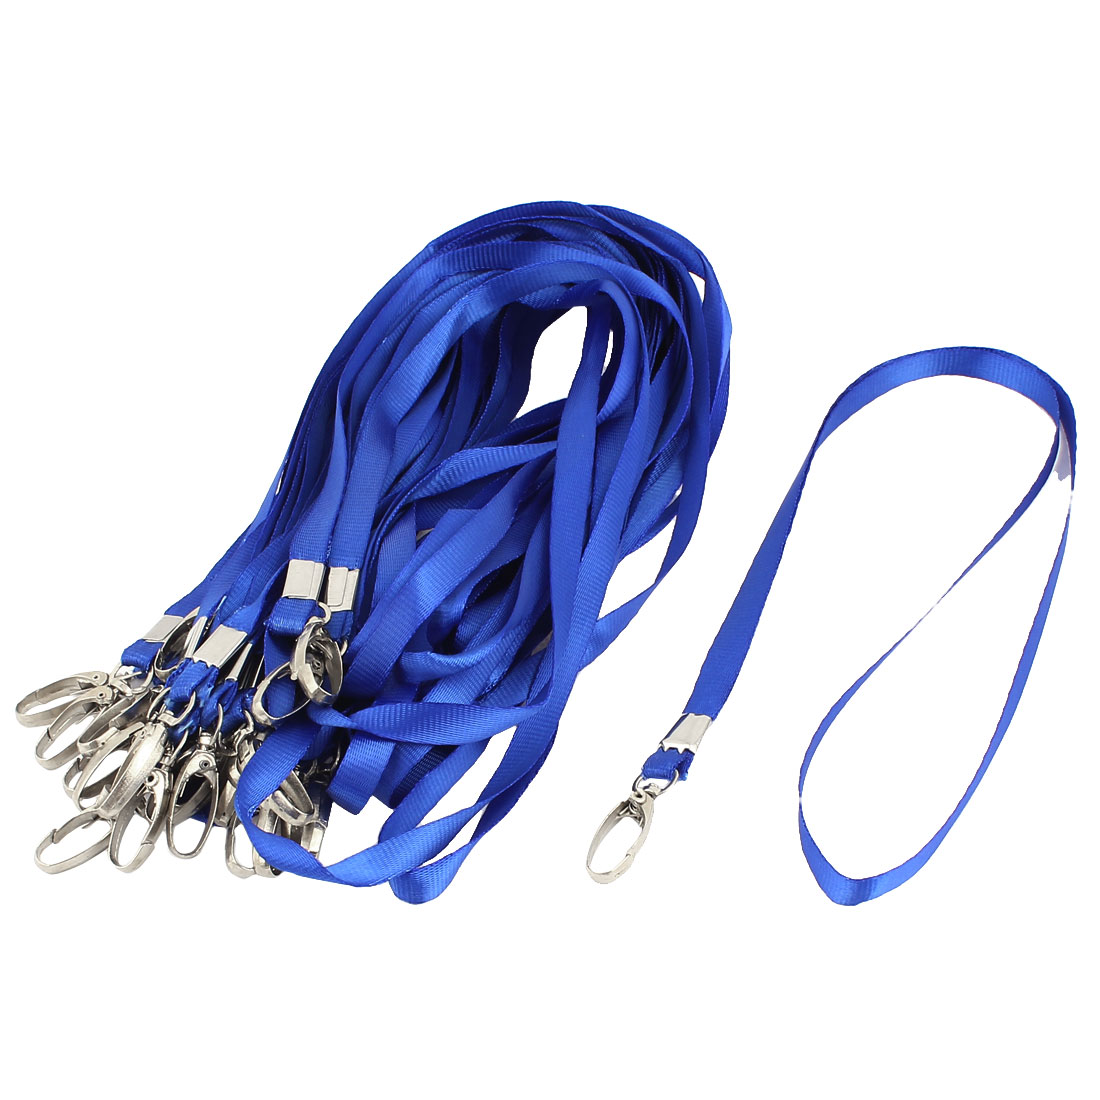 Unique Bargains 36 Pcs Neck Strap ID Card Badge Holder Lanyard School Office Bank Students Stationery Blue